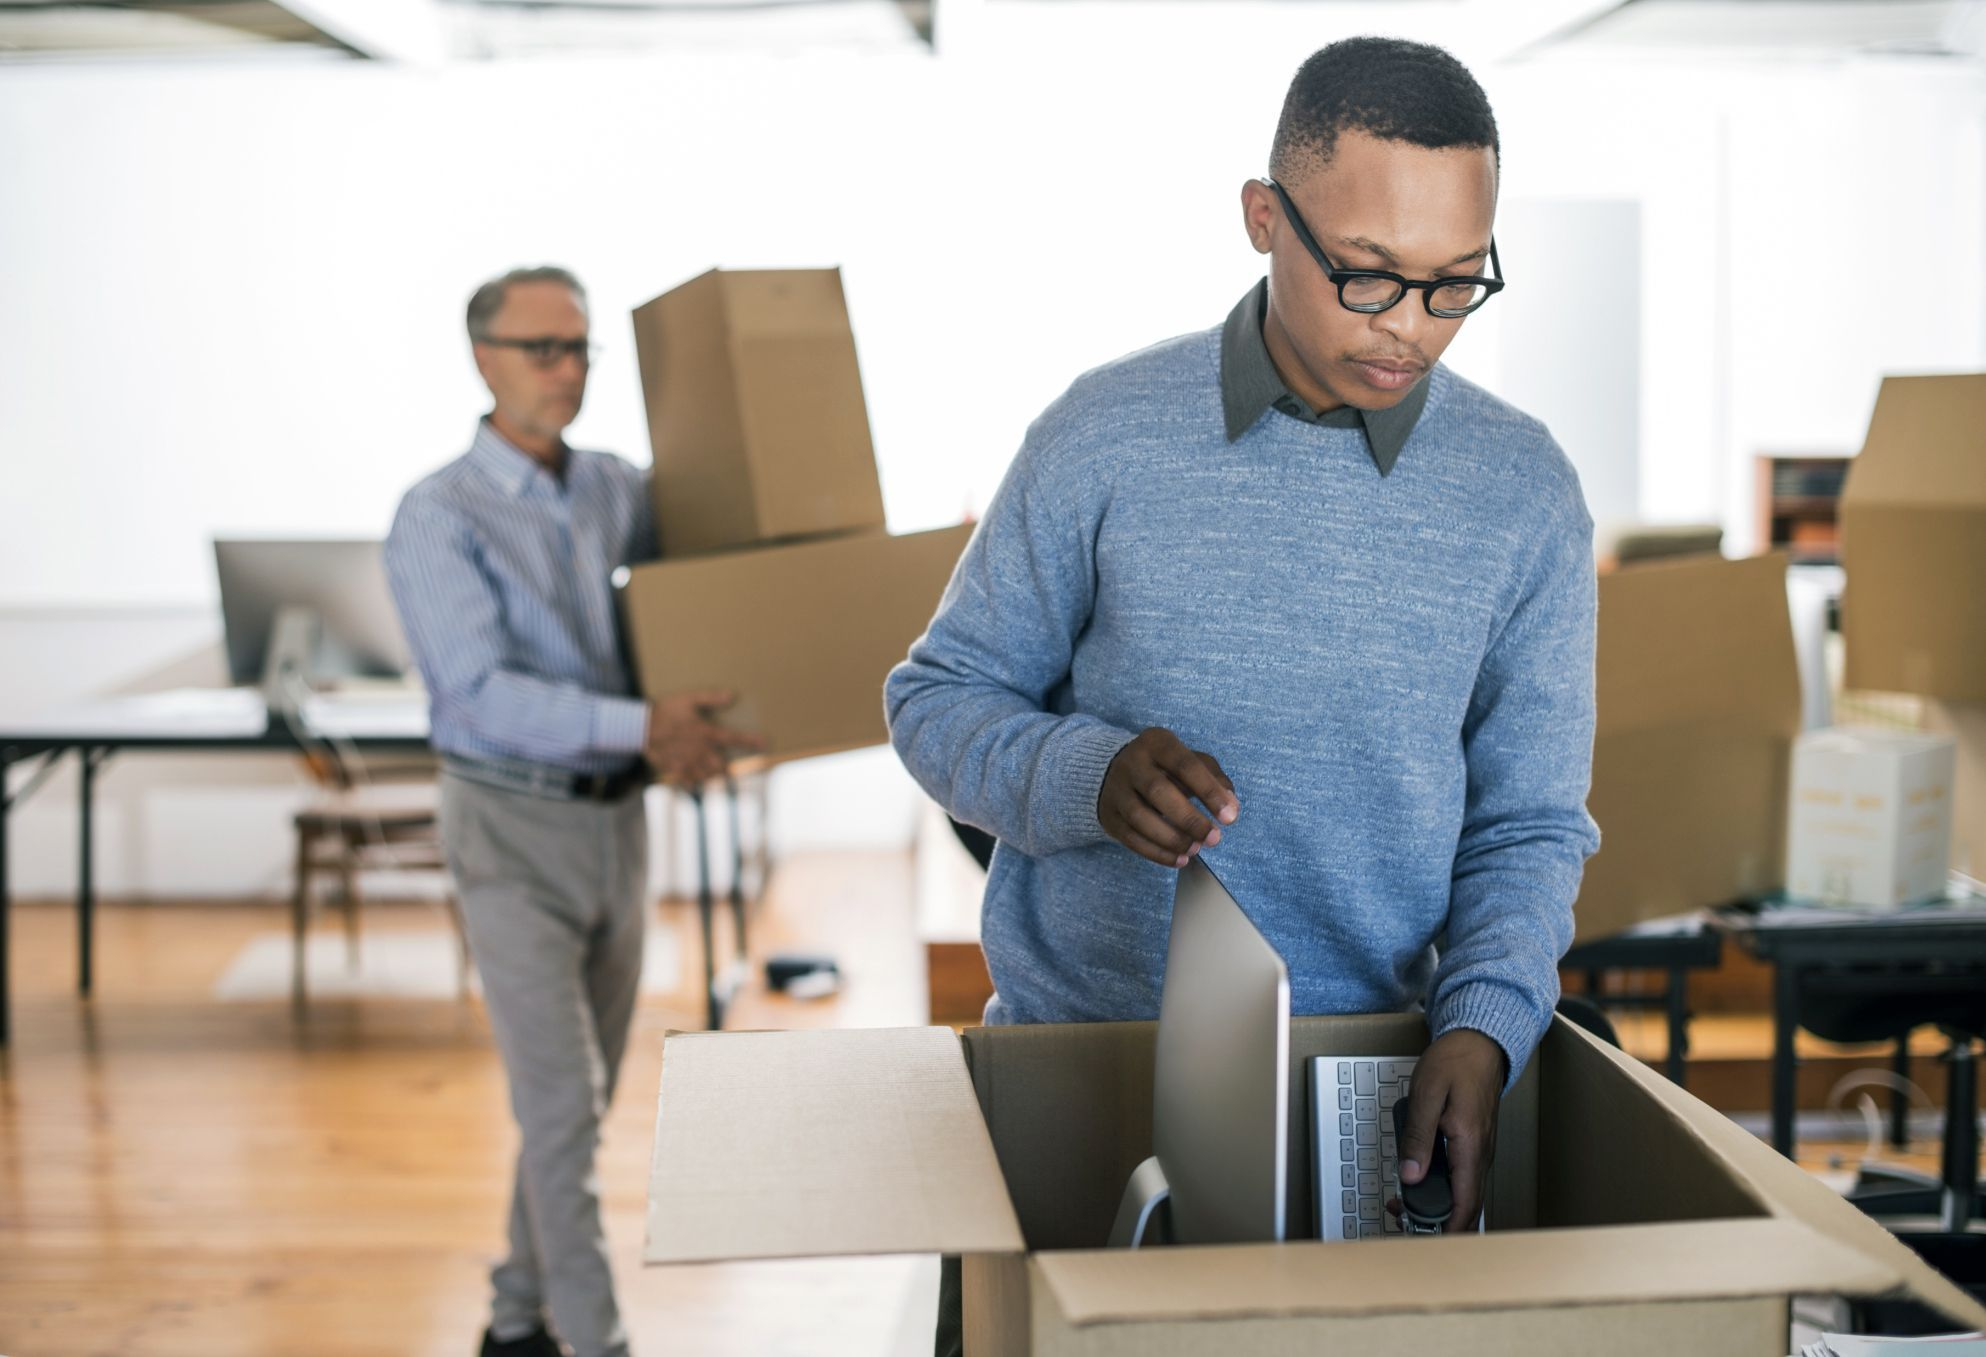 steps to take when moving a business business relocation tips rh pinterest com